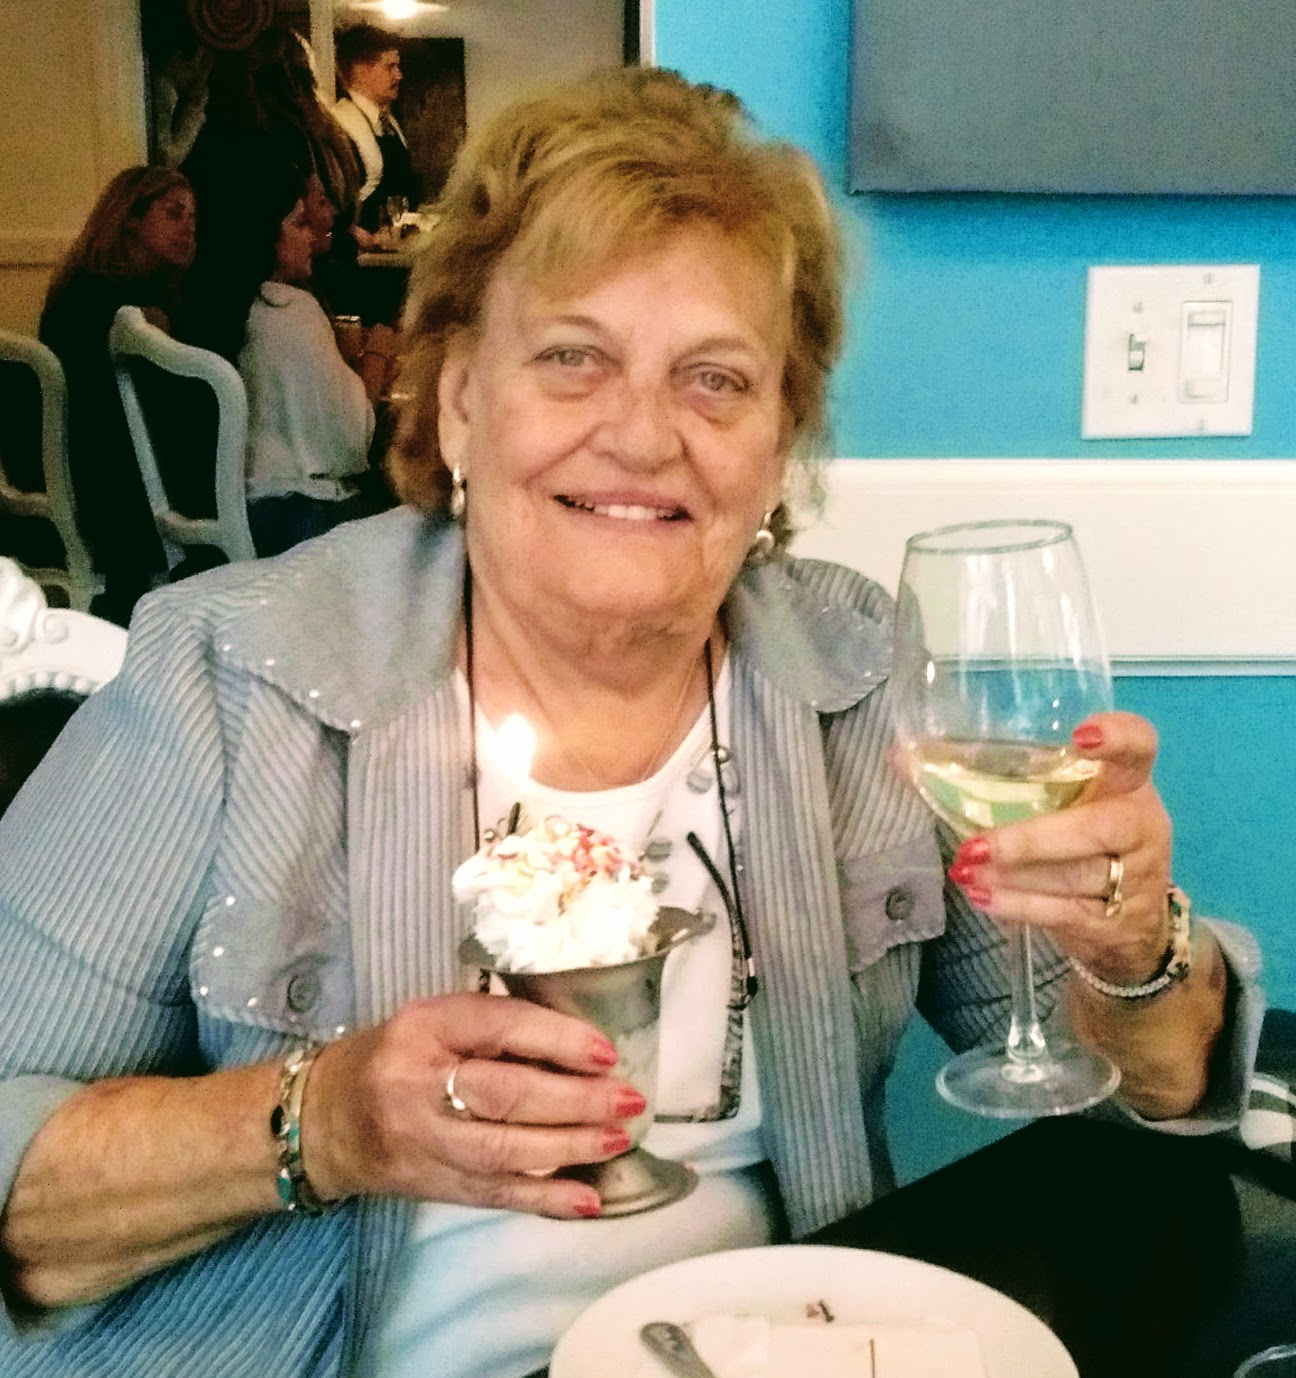 2018-0426-Marilynn-Parker-Birthday-Candy-Apple-Cafe-Jacksonville-Florida-Dinner-w-DWBP-and-family-Before-Johnny-Mathis-Concert